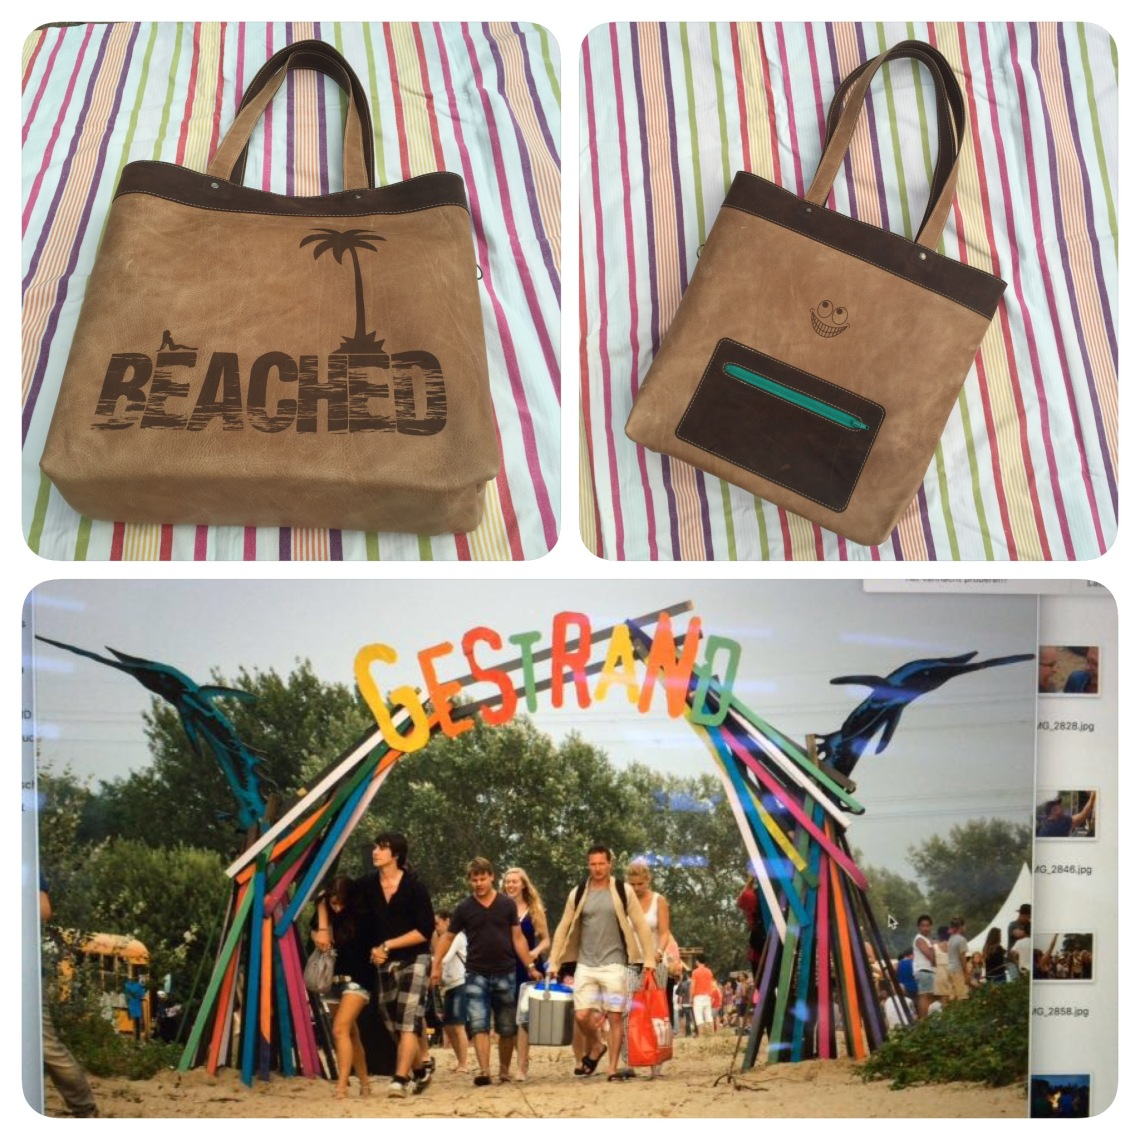 Leather bag beached for event Gestrand